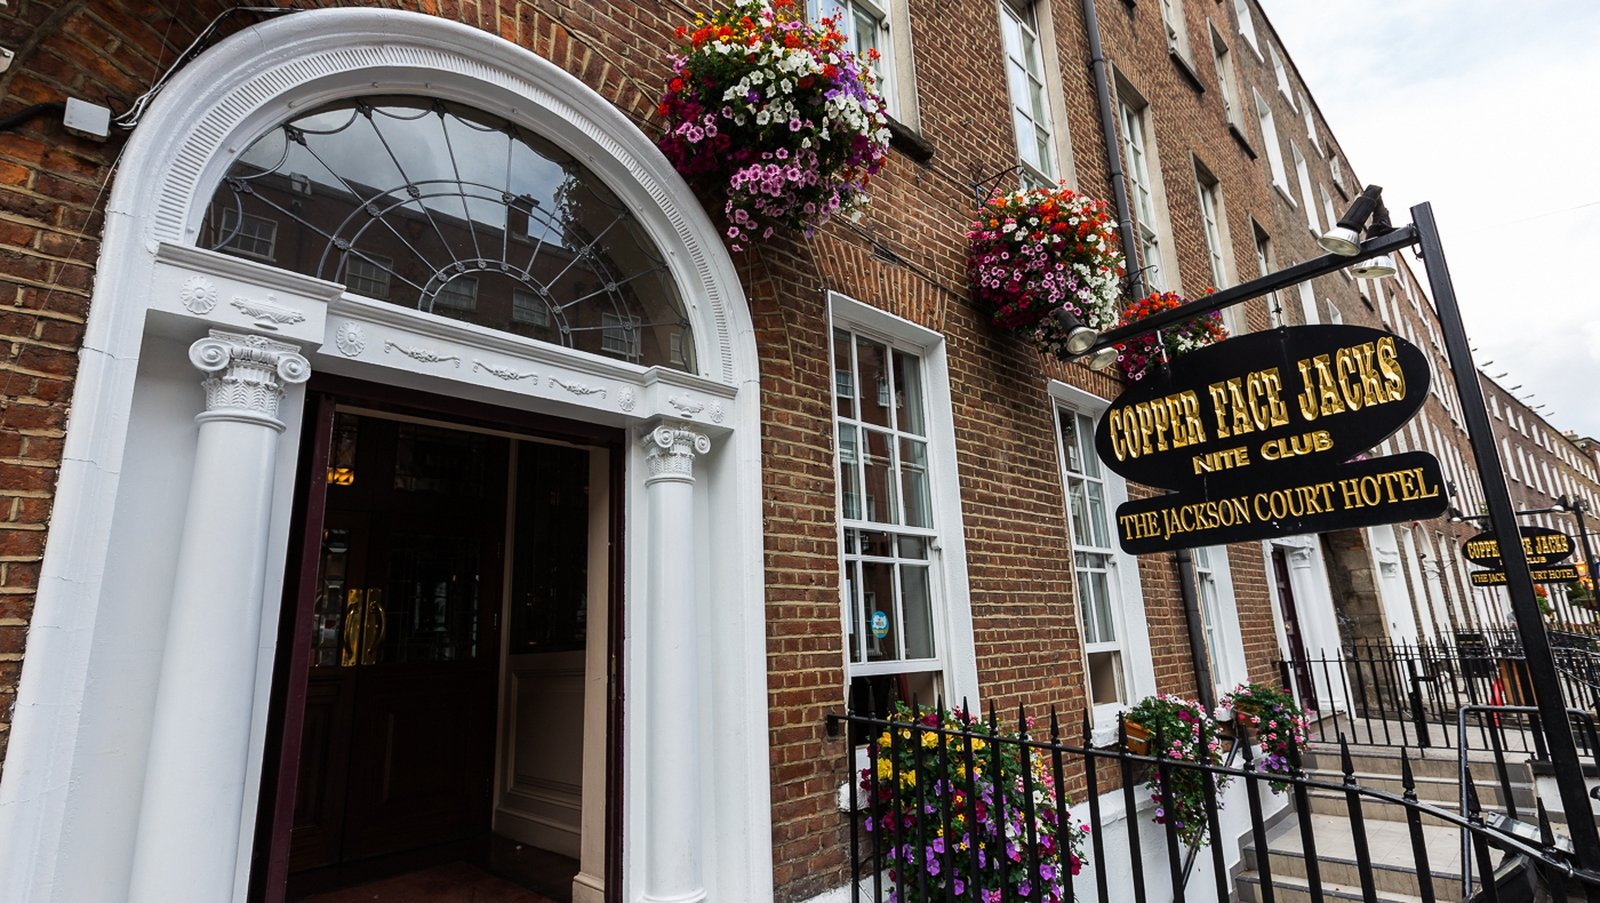 Dublin's 'Coppers' nightclub is up for sale